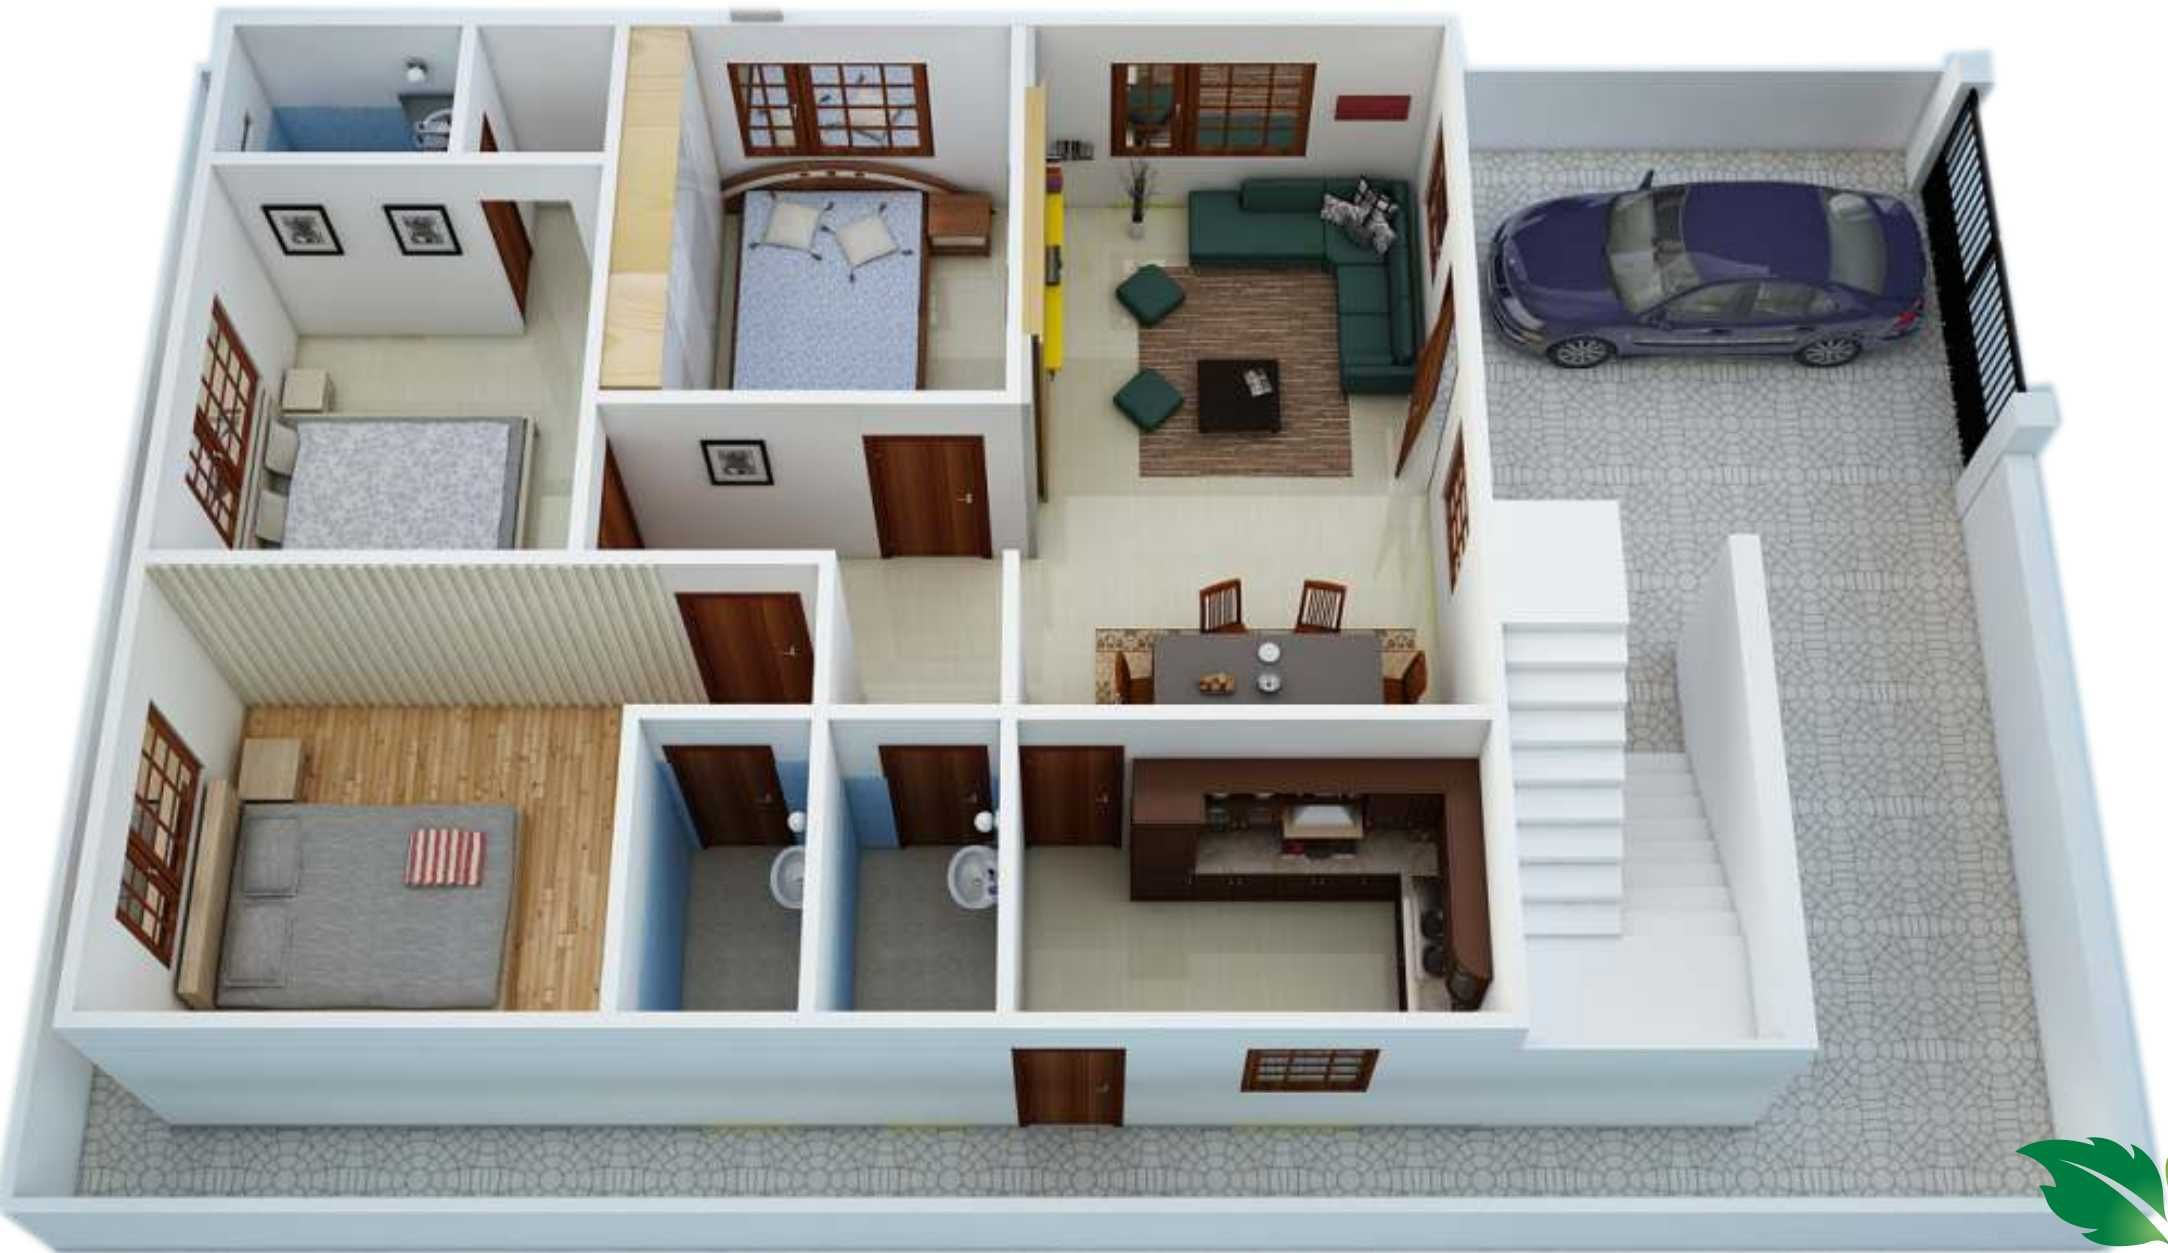 1800 Sq Ft House Plans with Walkout Basement